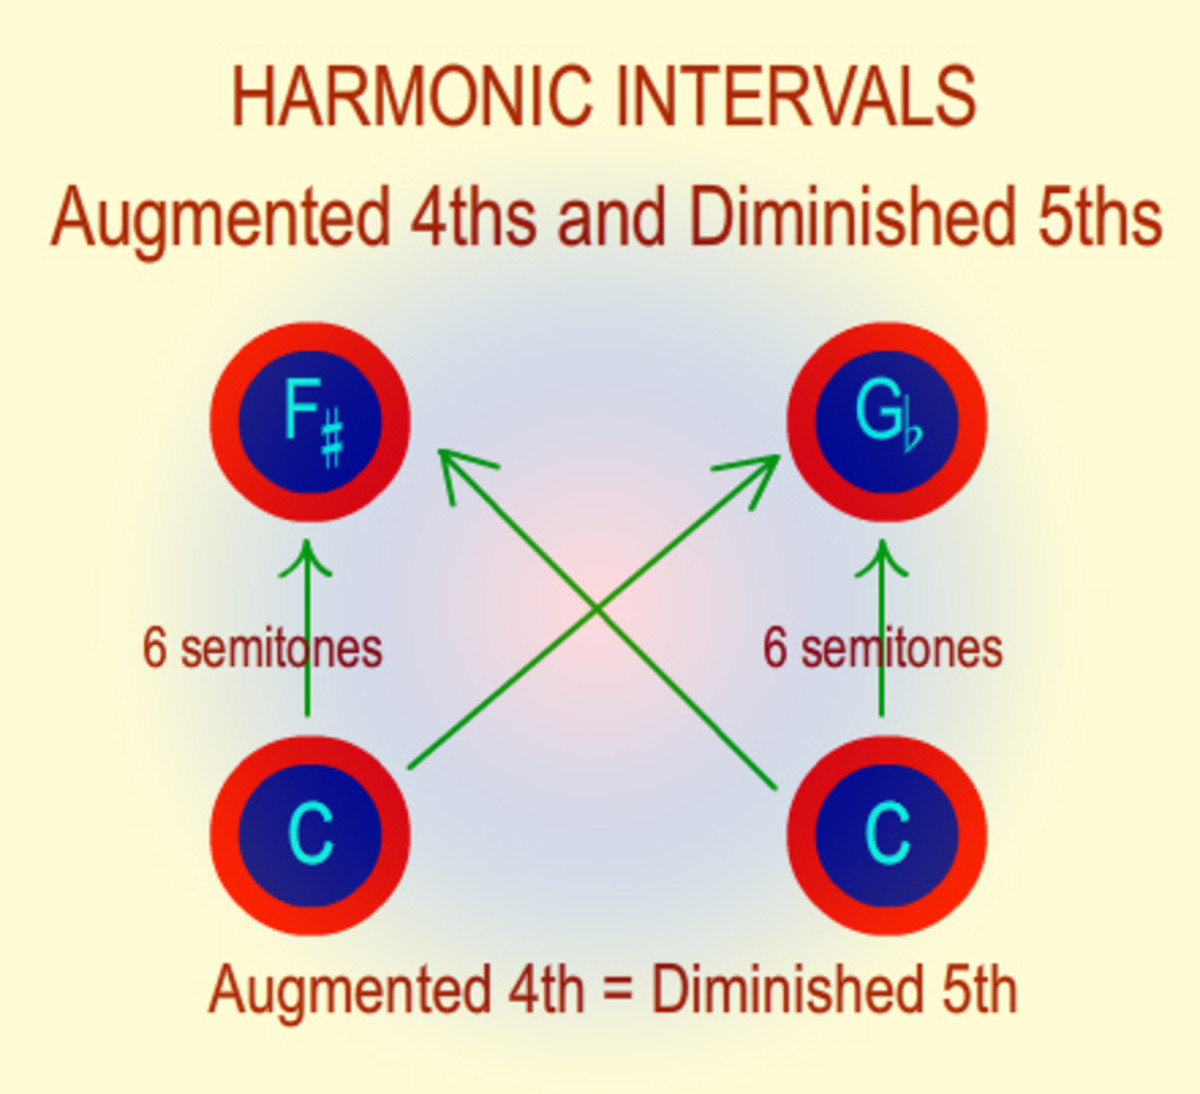 Augmented 4ths and Diminished 5ths are enharmonically equivalent.